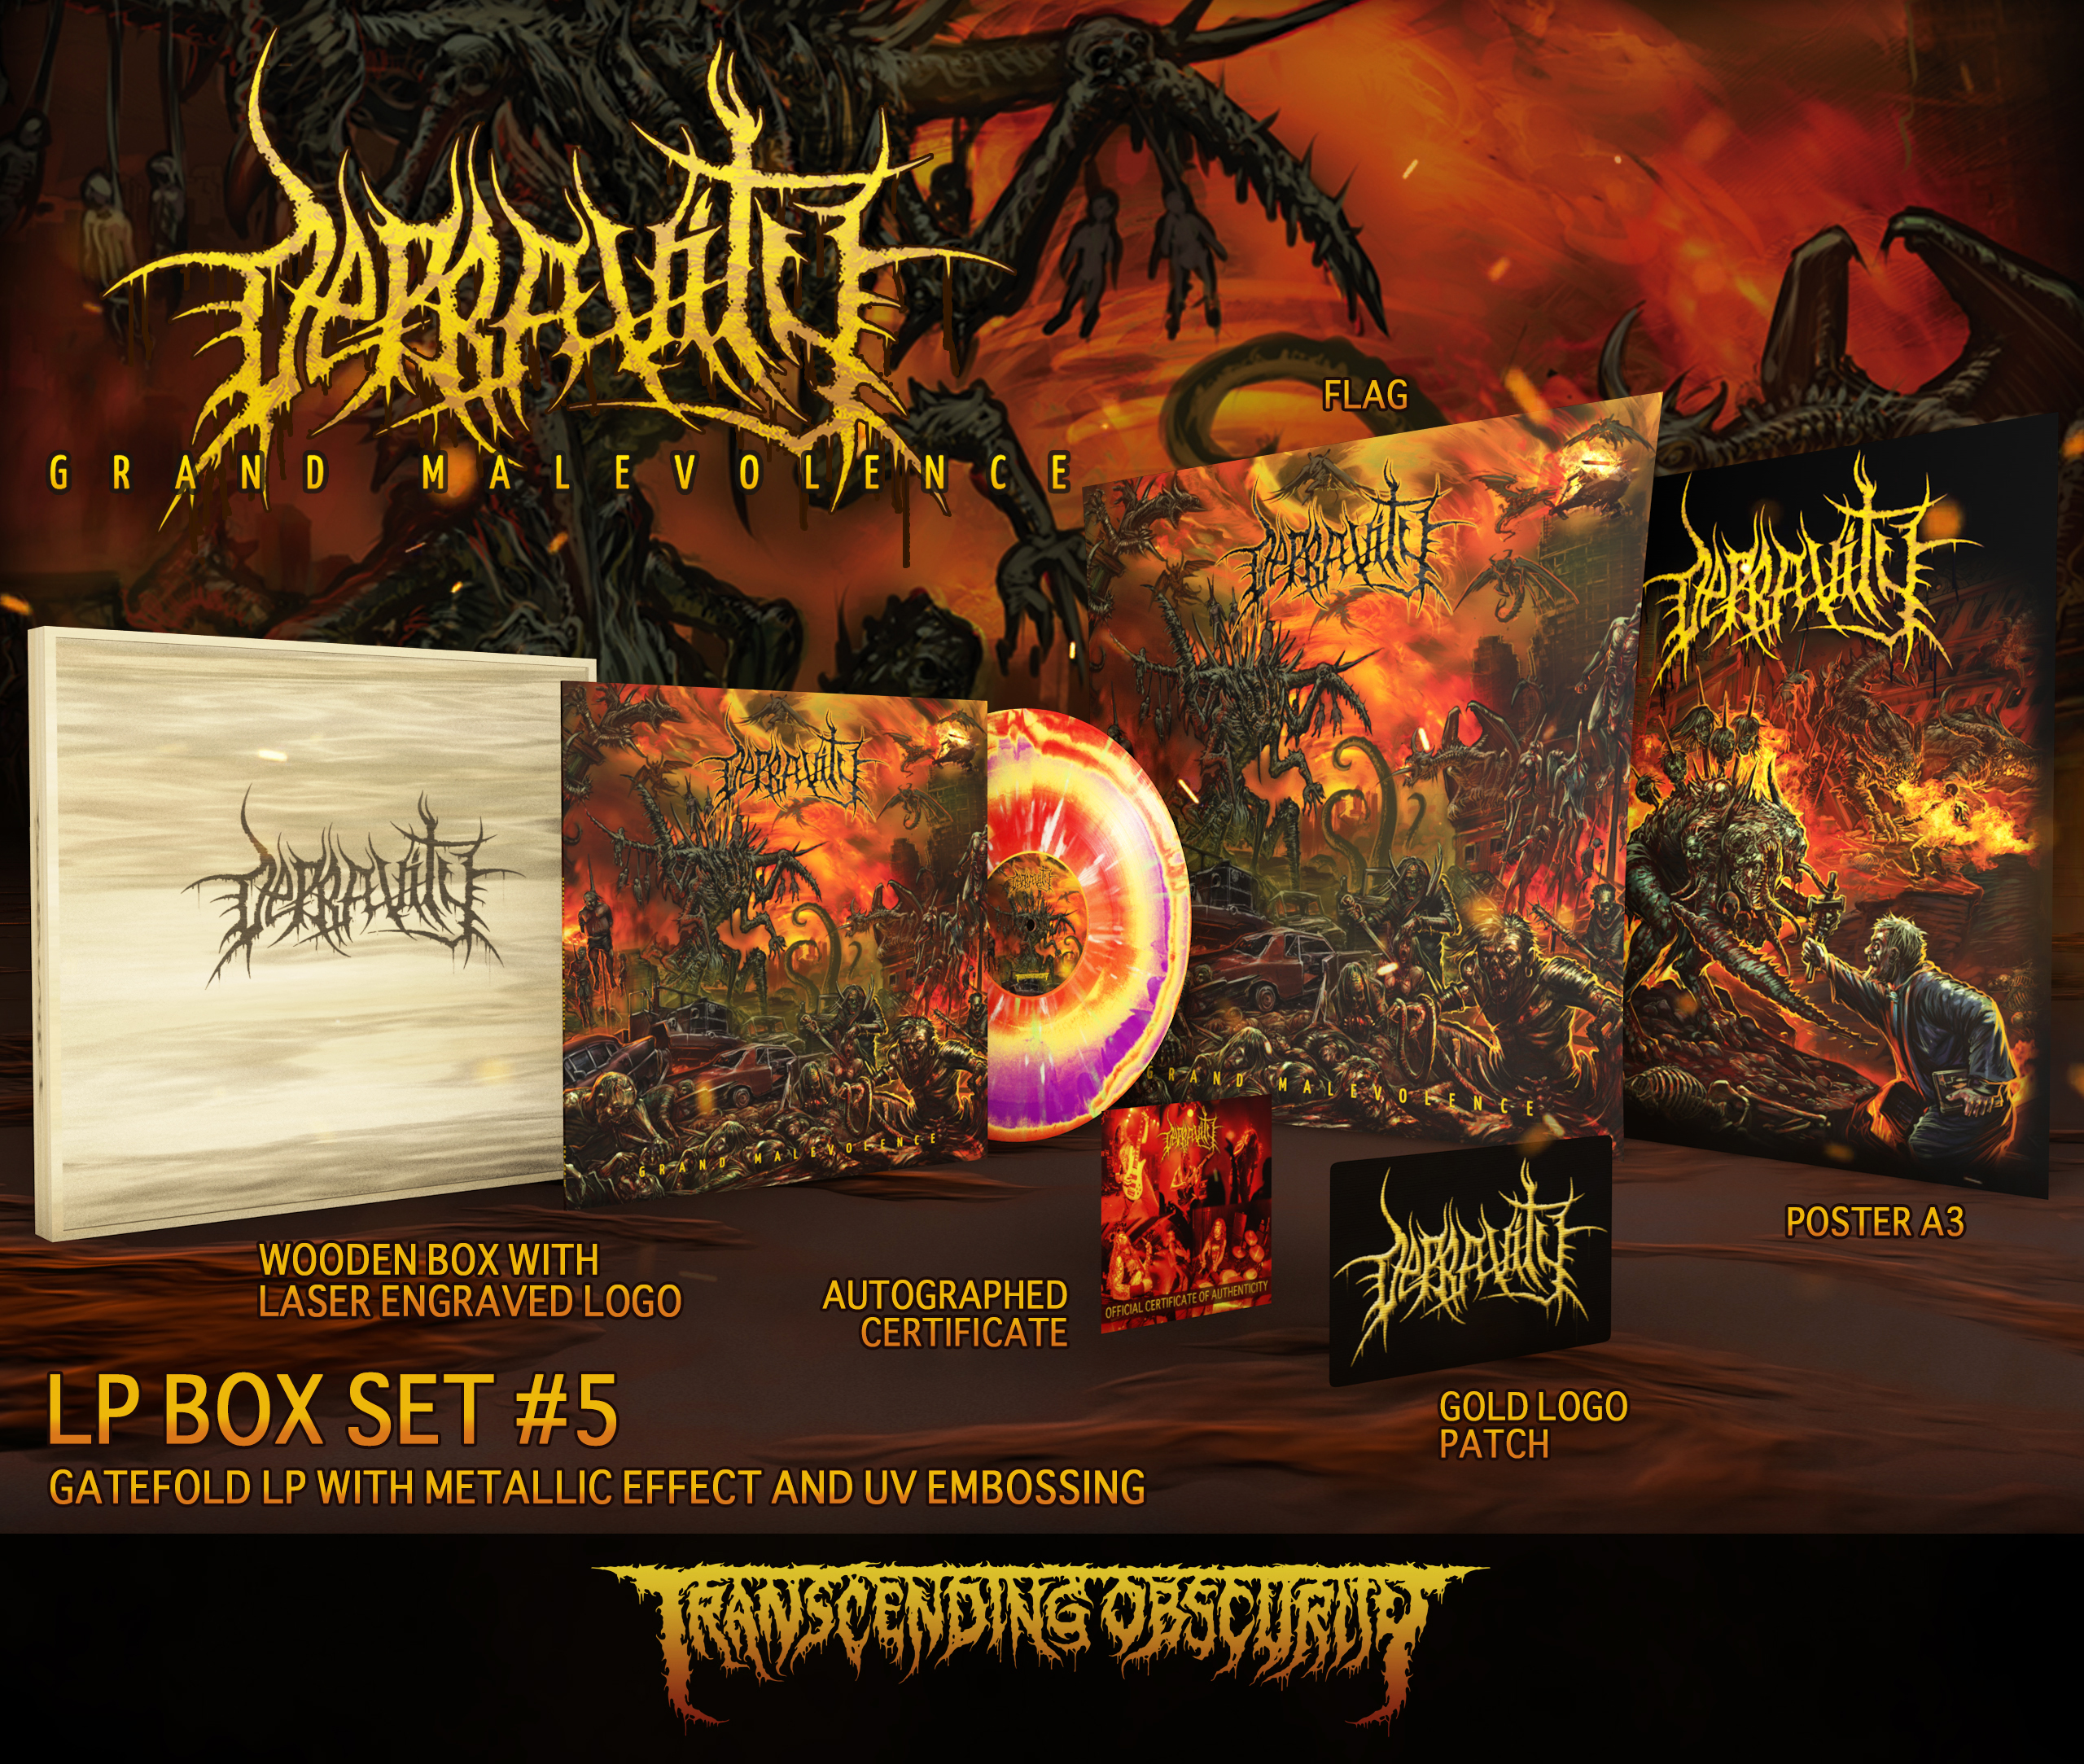 DEPRAVITY - 'Grand Malevolence' Wooden LP Box Set with Engraved Logo